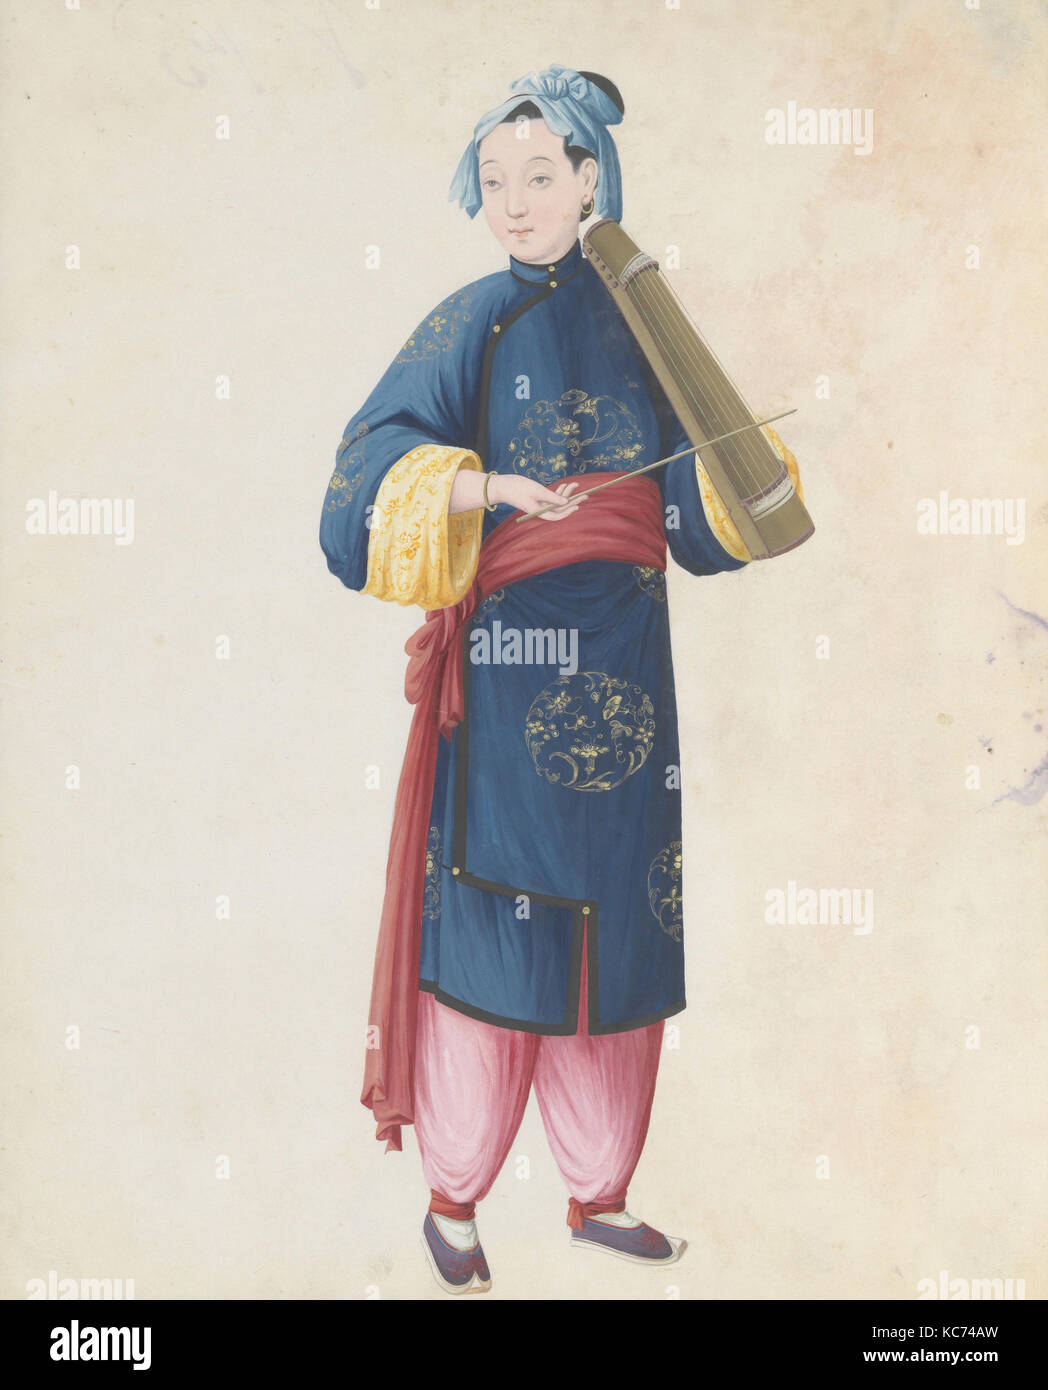 Watercolor of musician playing bowed qin(?), late 18th century - Stock Image